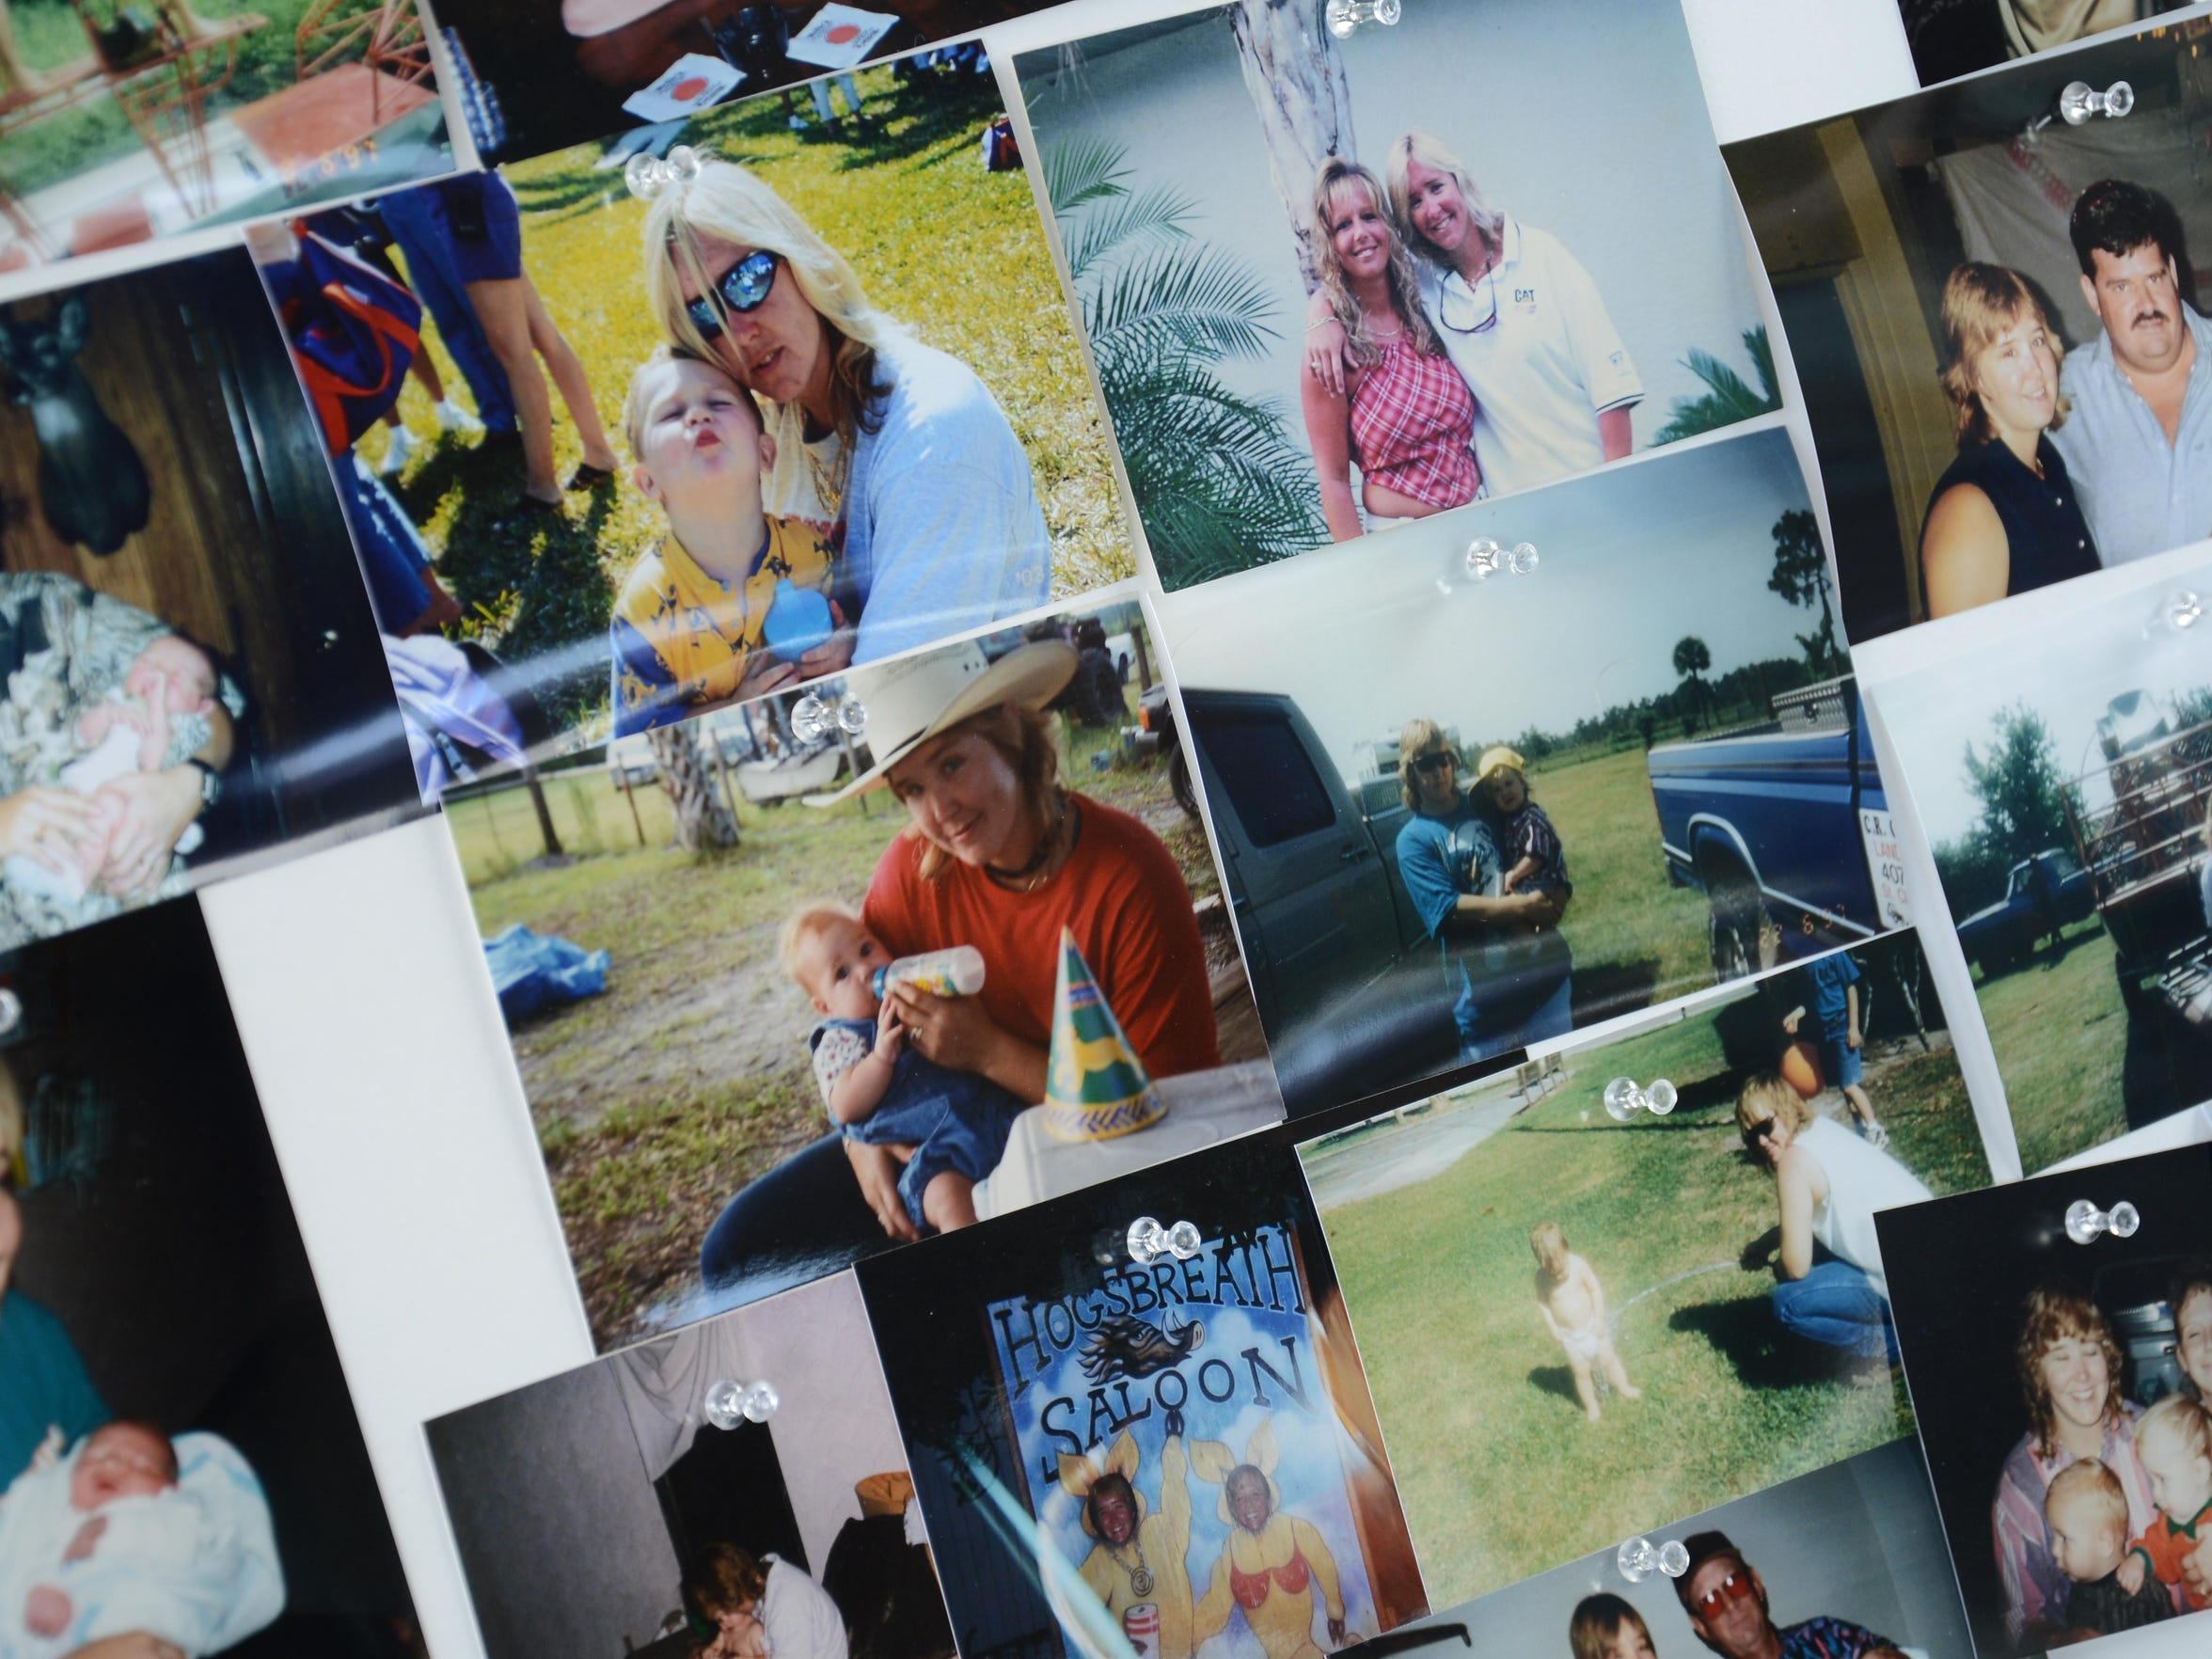 Pictures of Brandy Hall fill a poster in Malabar Community Park Saturday, where friends and family gathered for a celebration of her life. Hall disappeared after leaving work 10 years ago.